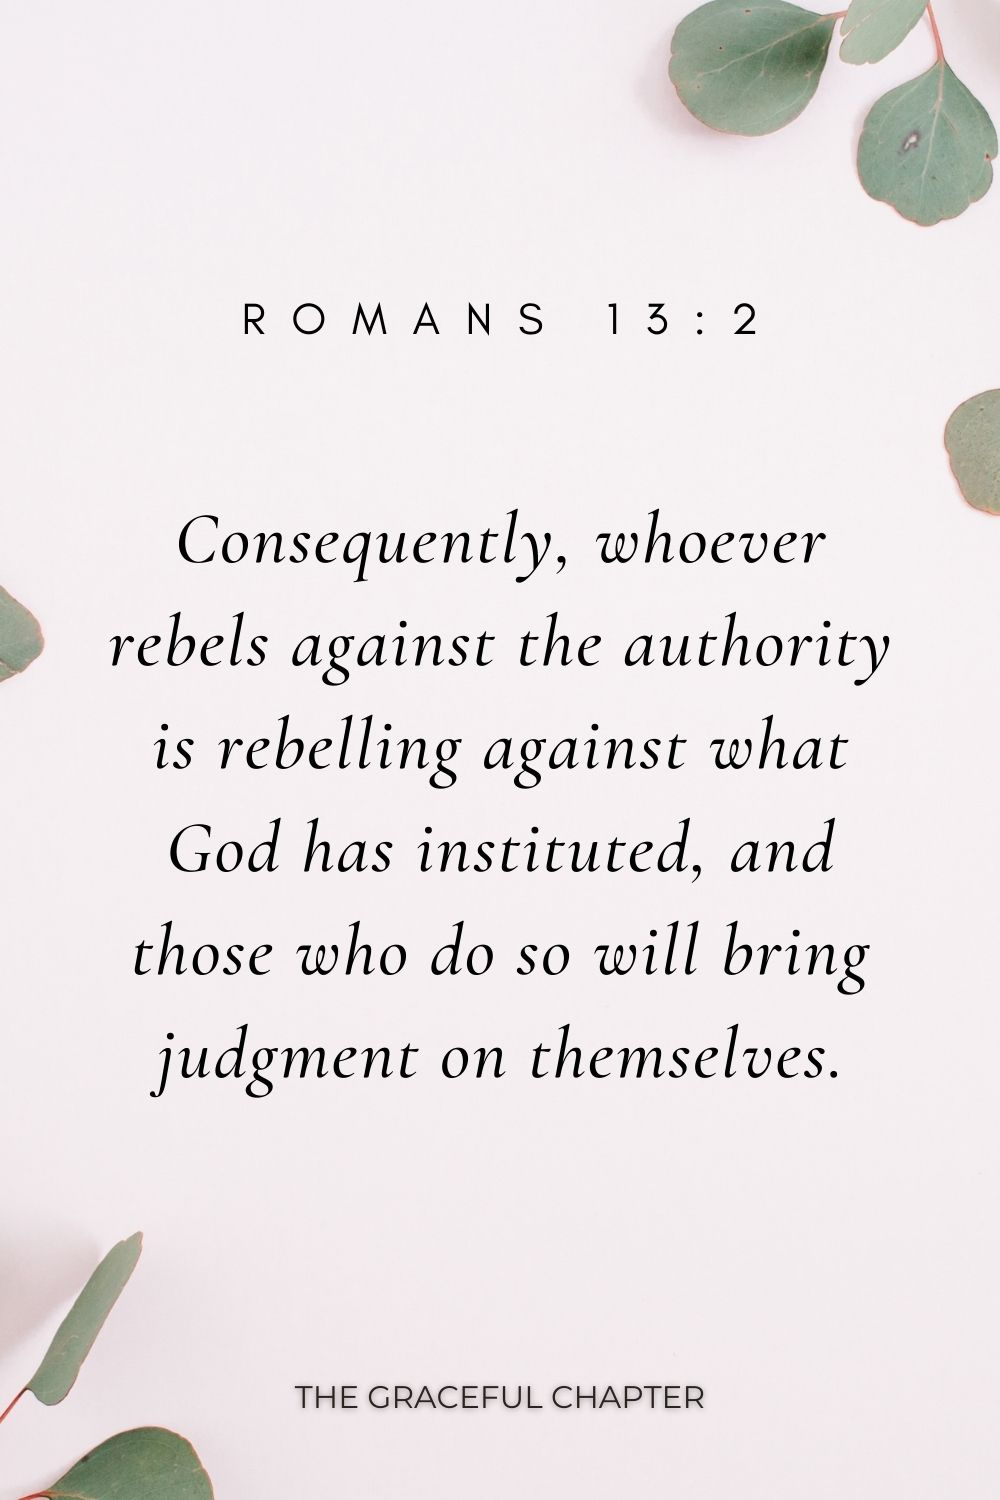 Consequently, whoever rebels against the authority is rebelling against what God has instituted, and those who do so will bring judgment on themselves. Romans 13:2